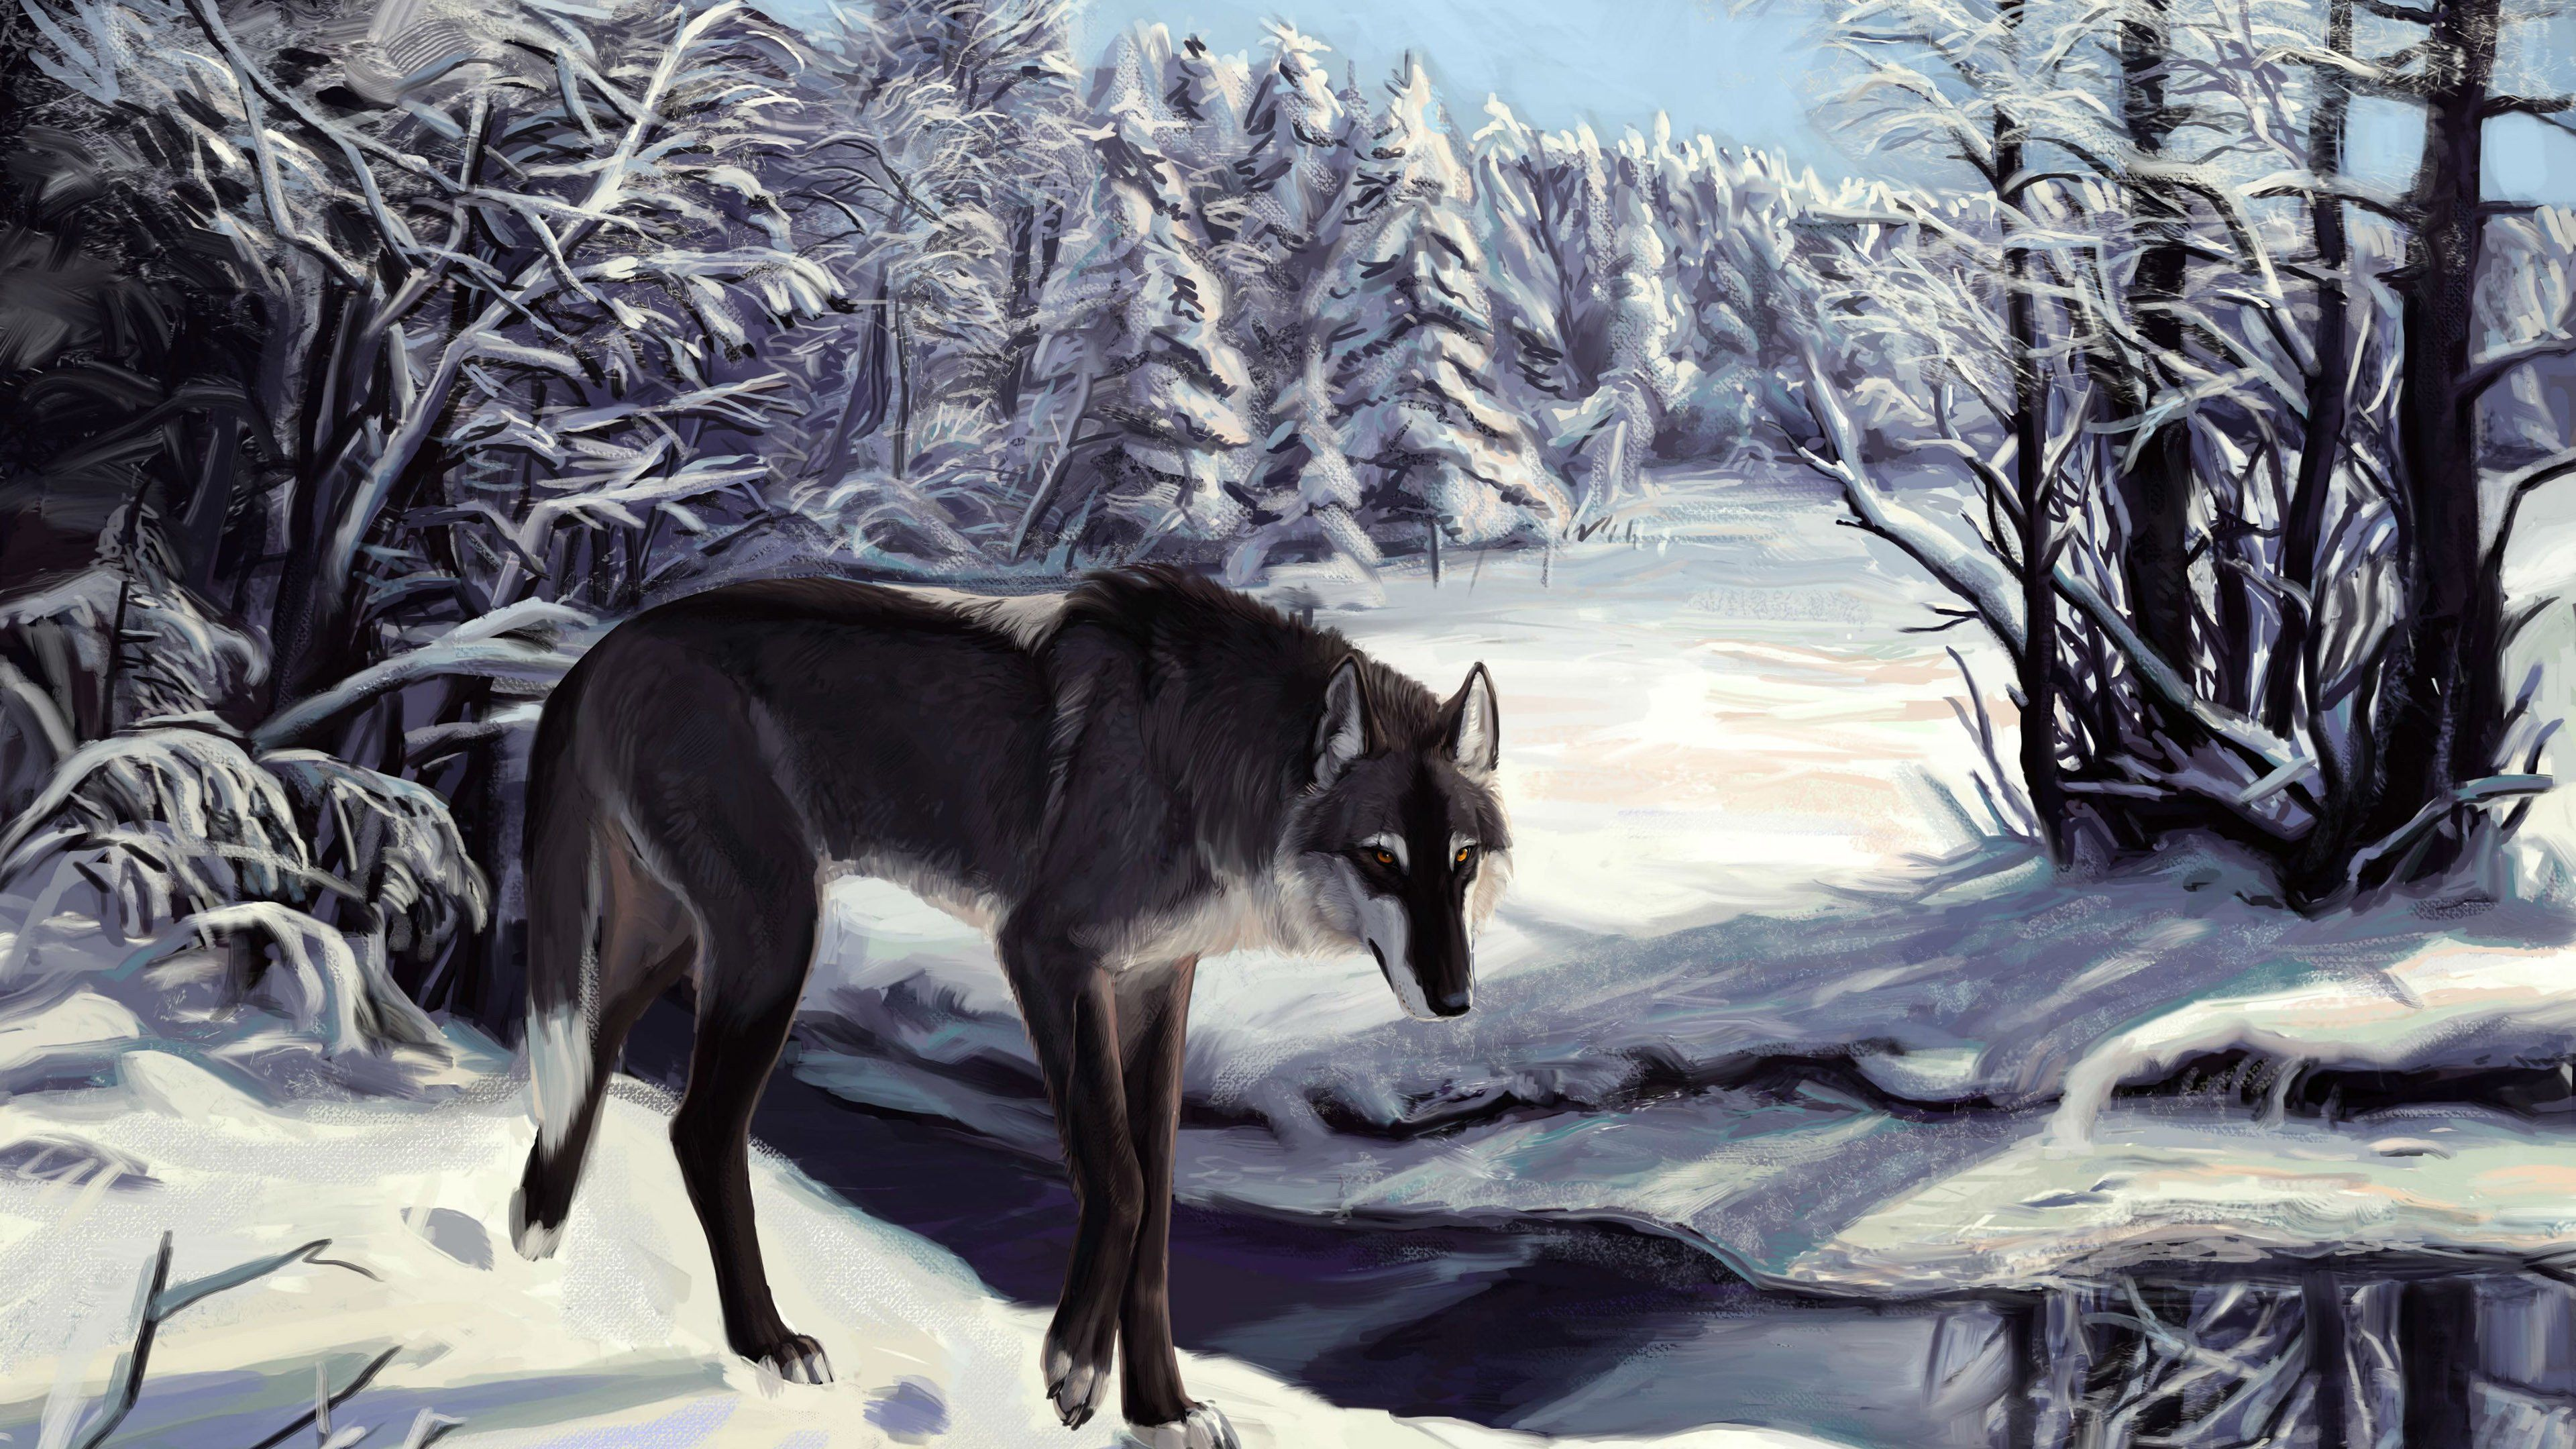 Wolf In The Snowy Forest Wallpaper